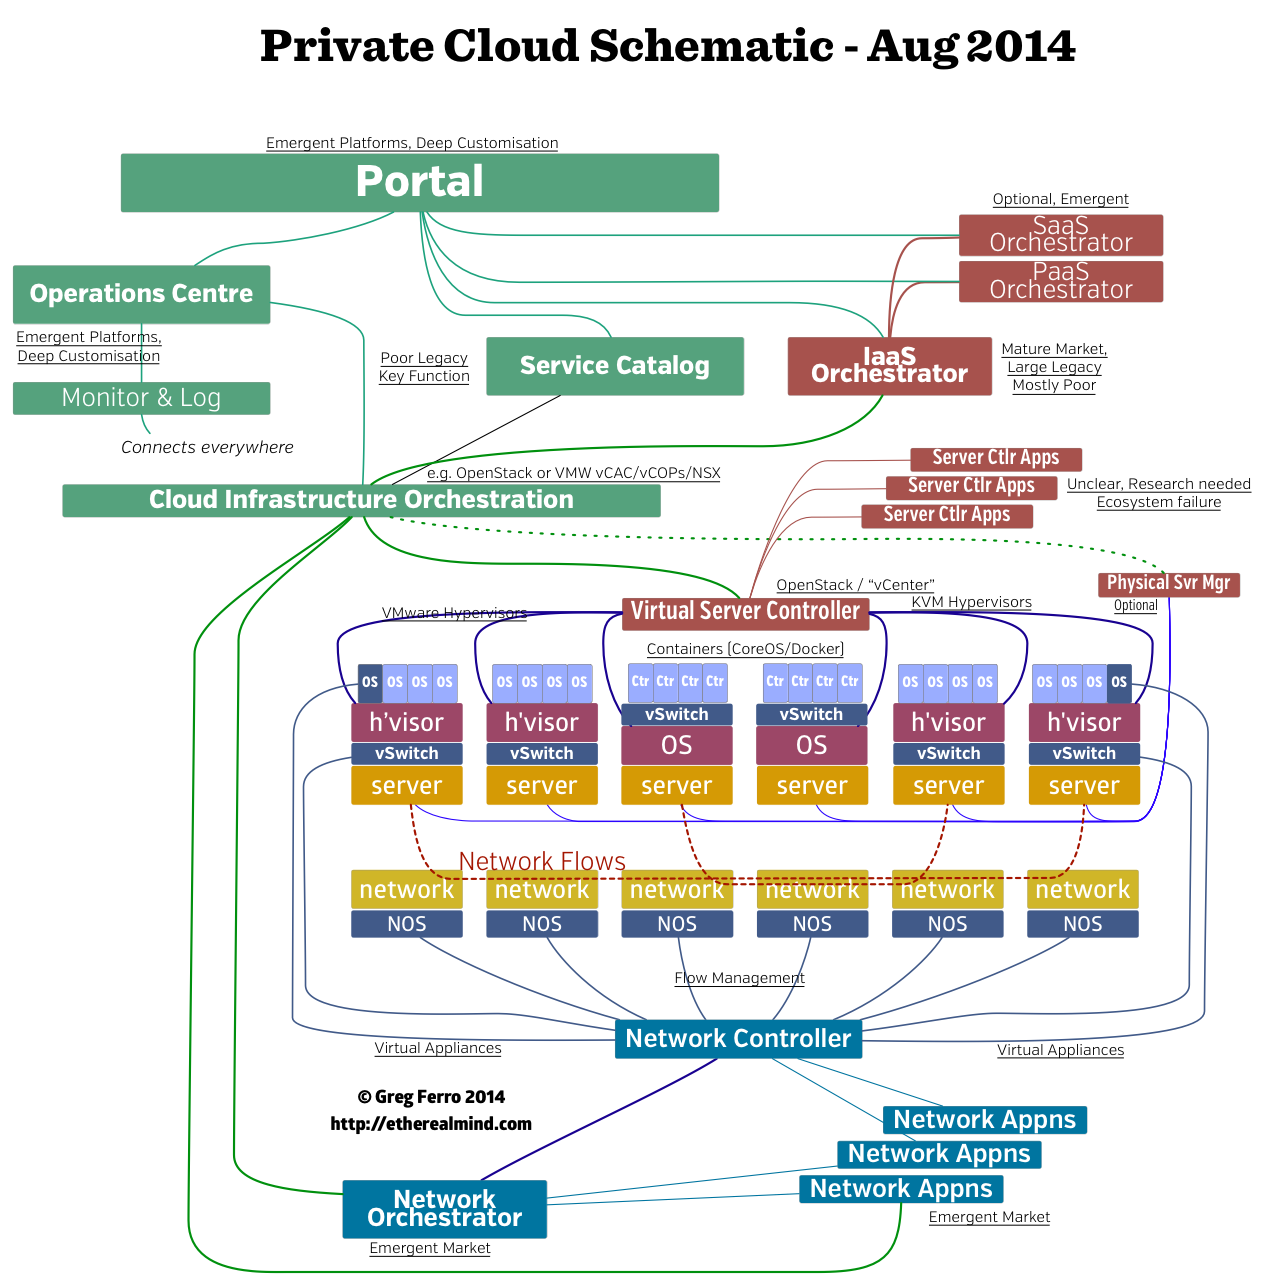 Cloud architecture selol ink my private cloud block architecture diagram etherealmind ccuart Choice Image